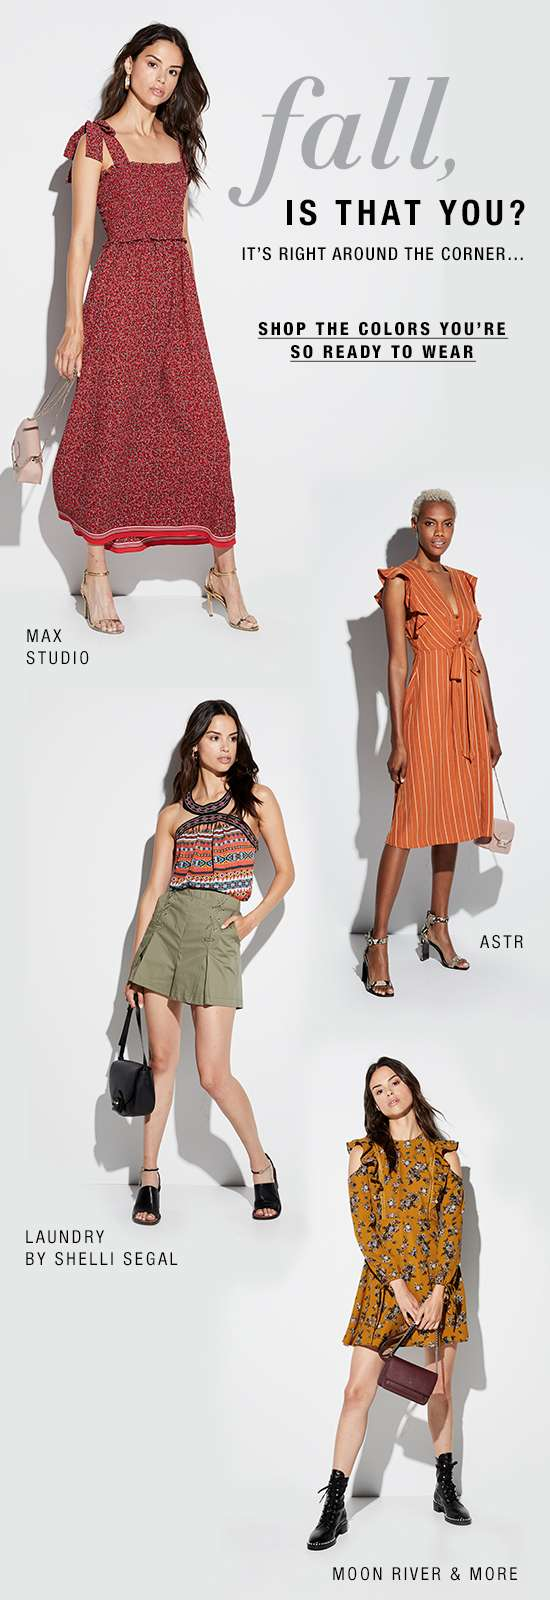 Women's apparel in fall colors